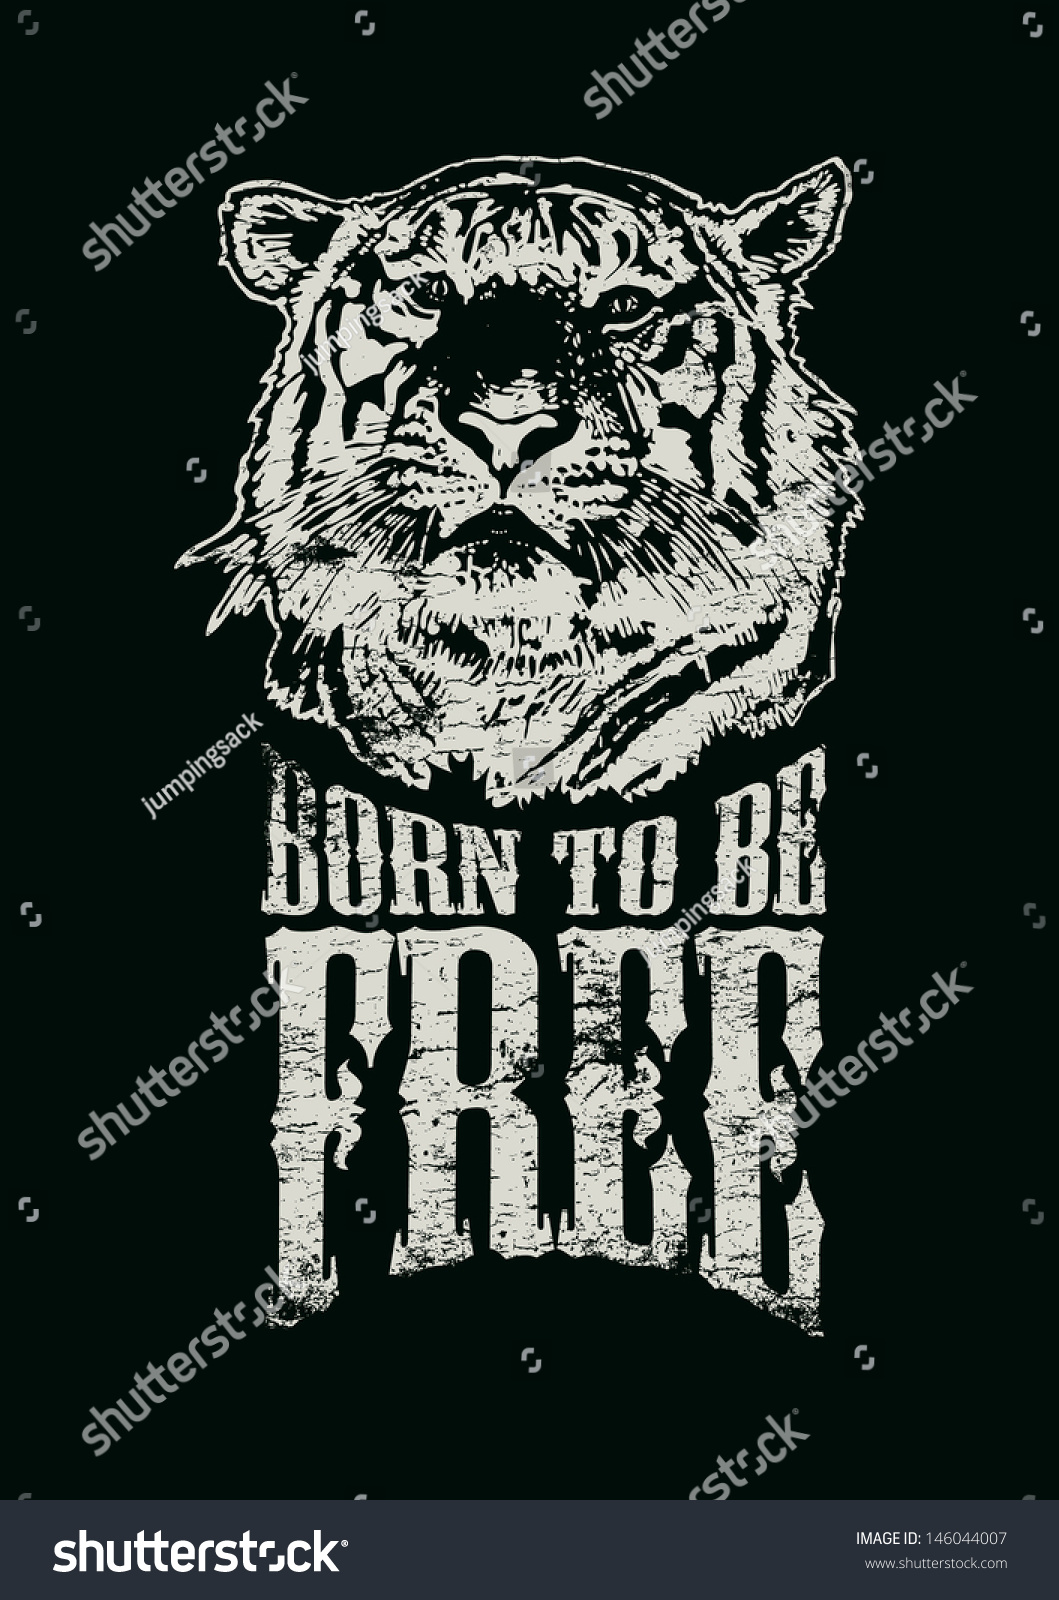 Free poster design and print - Retro Design Born To Be Free For Poster Or T Shirt Print With